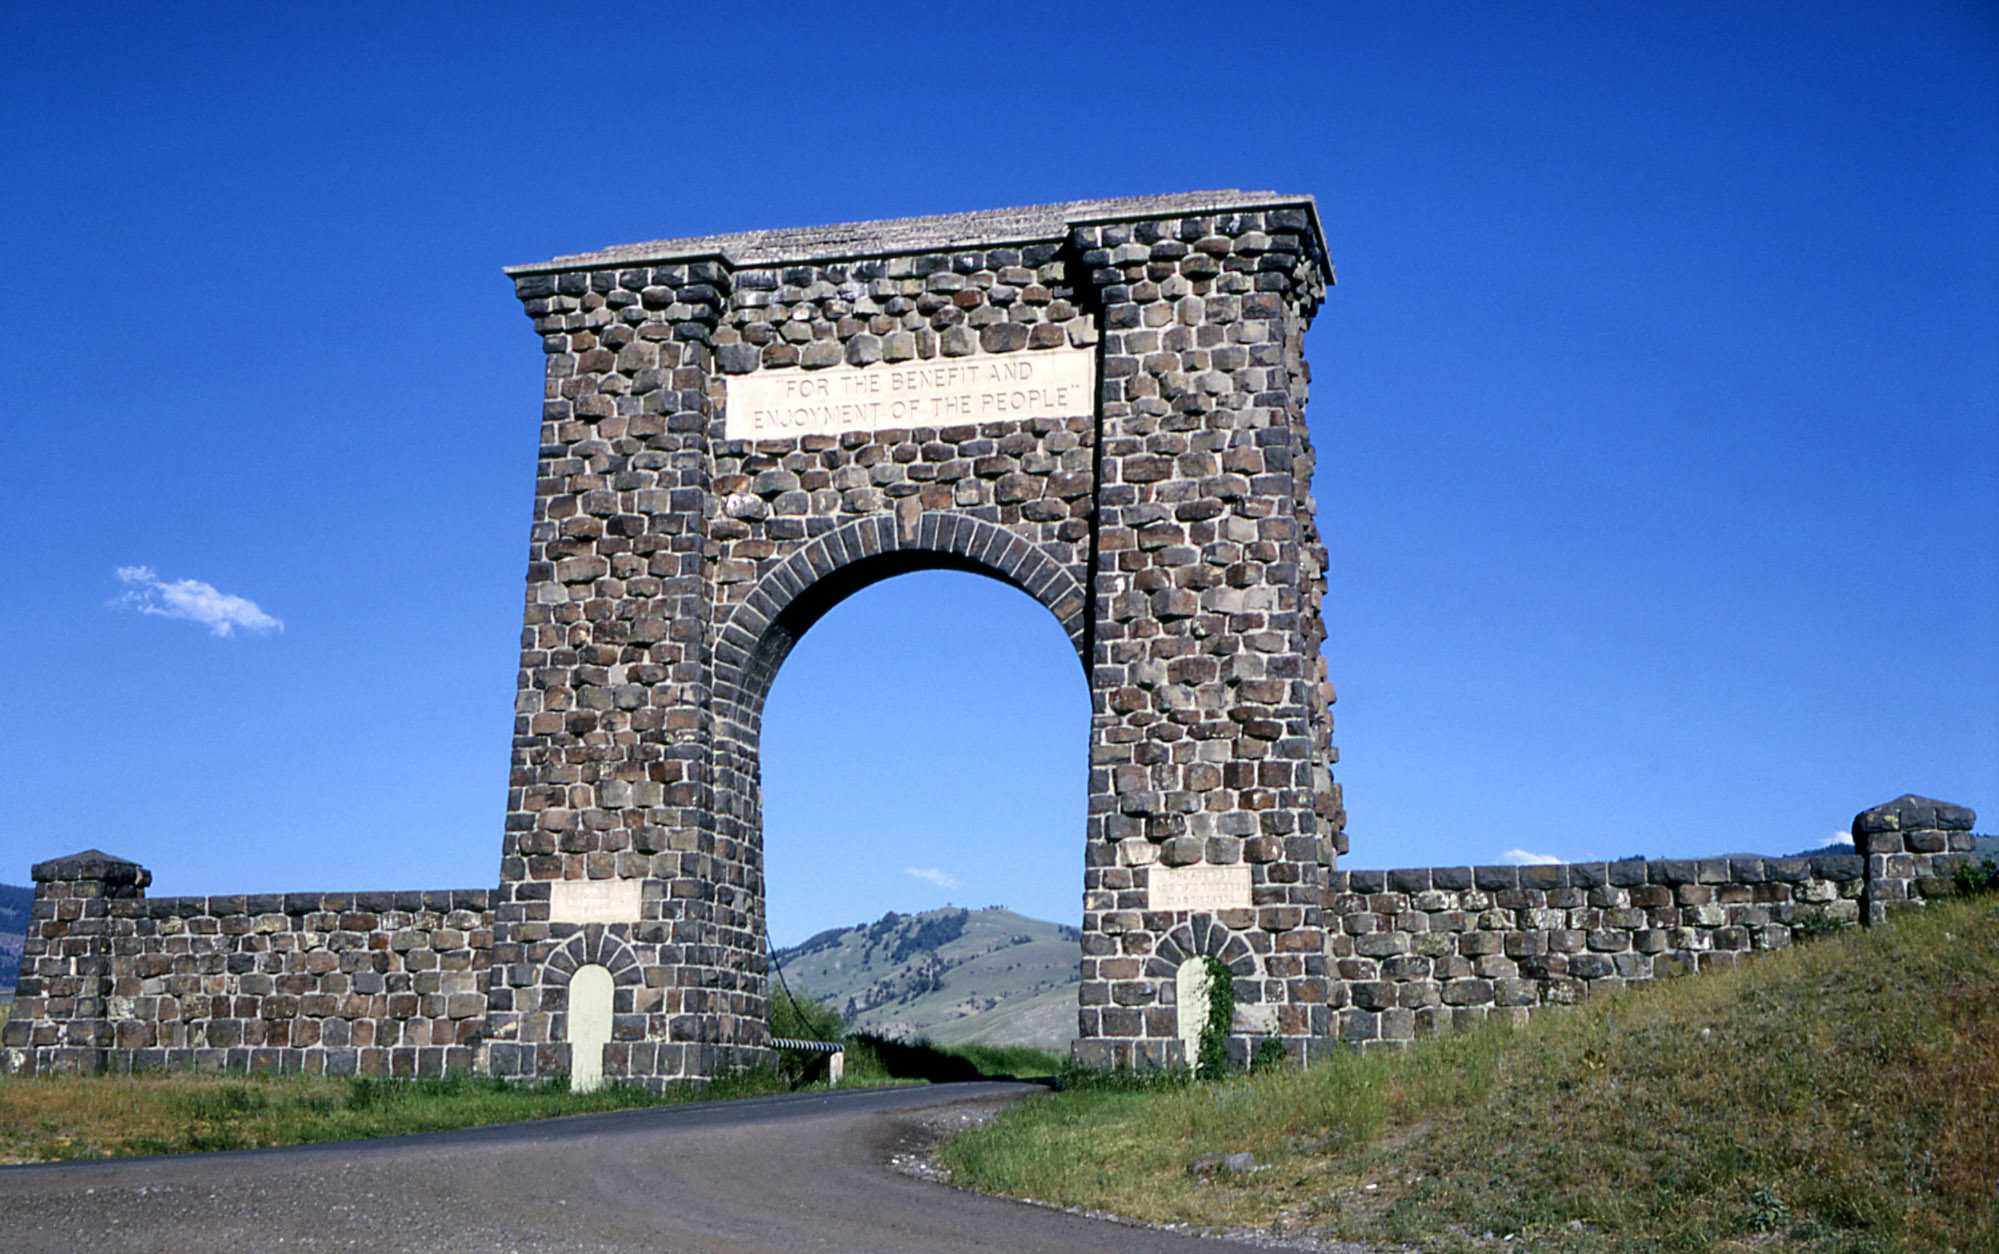 Lots of road construction in 2014 for YNP